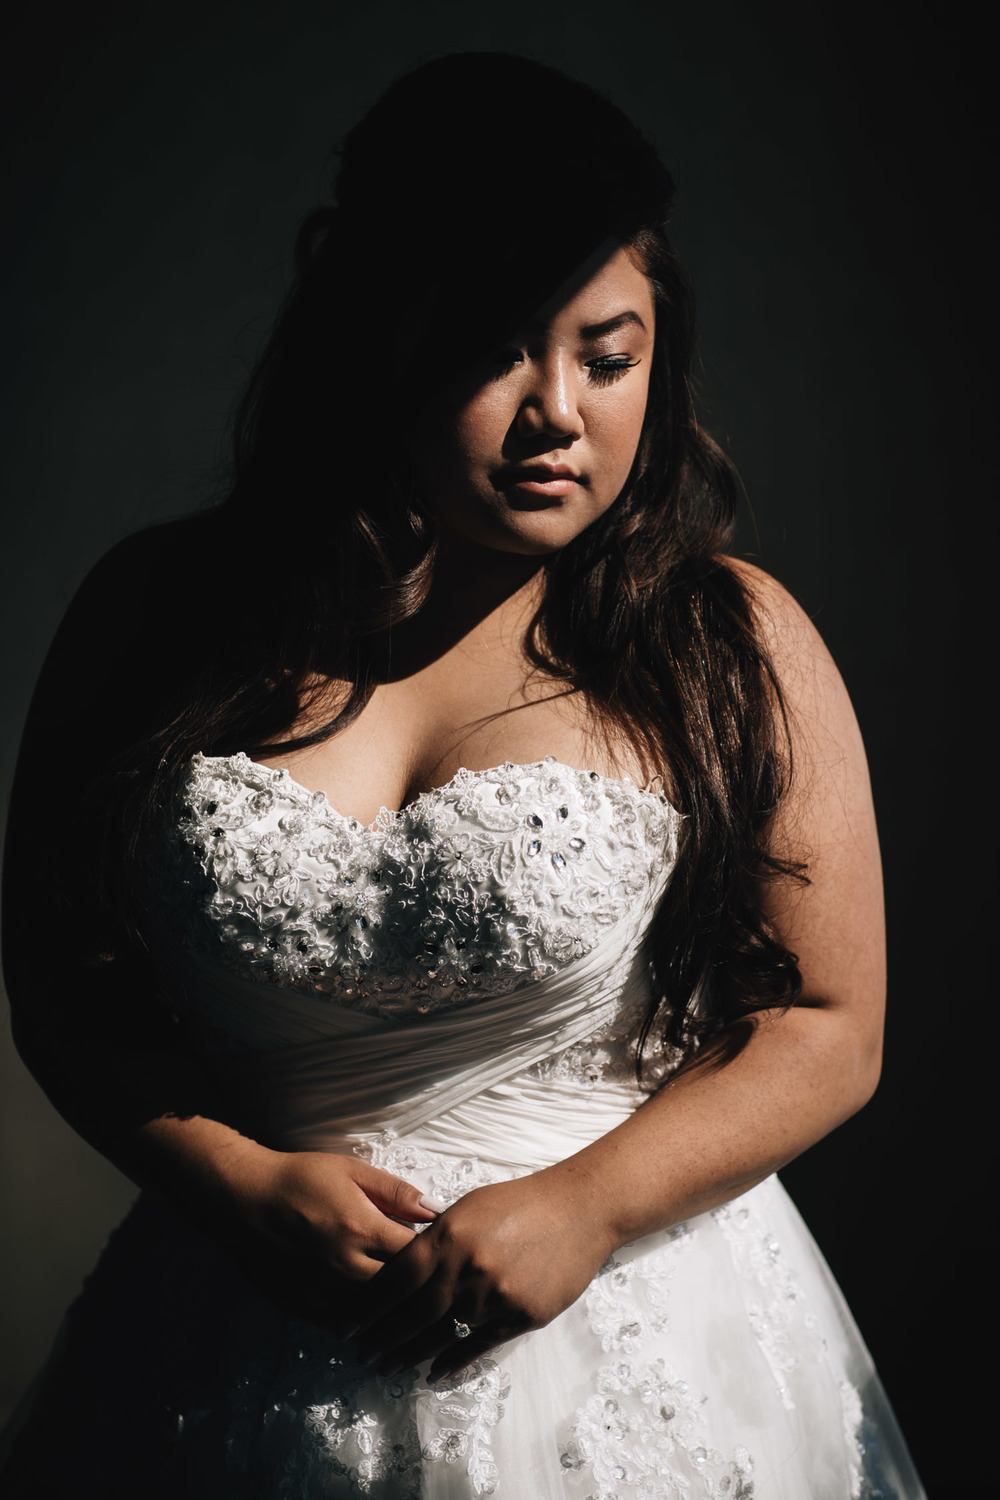 bride portrait in sandman hotel surrey for wedding photography vsco